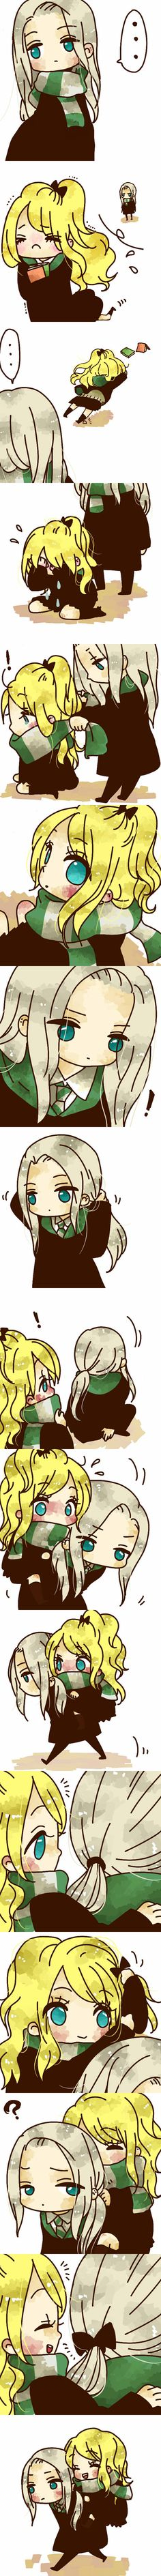 Lucius and Narcissa I have to admit it's pretty cute....